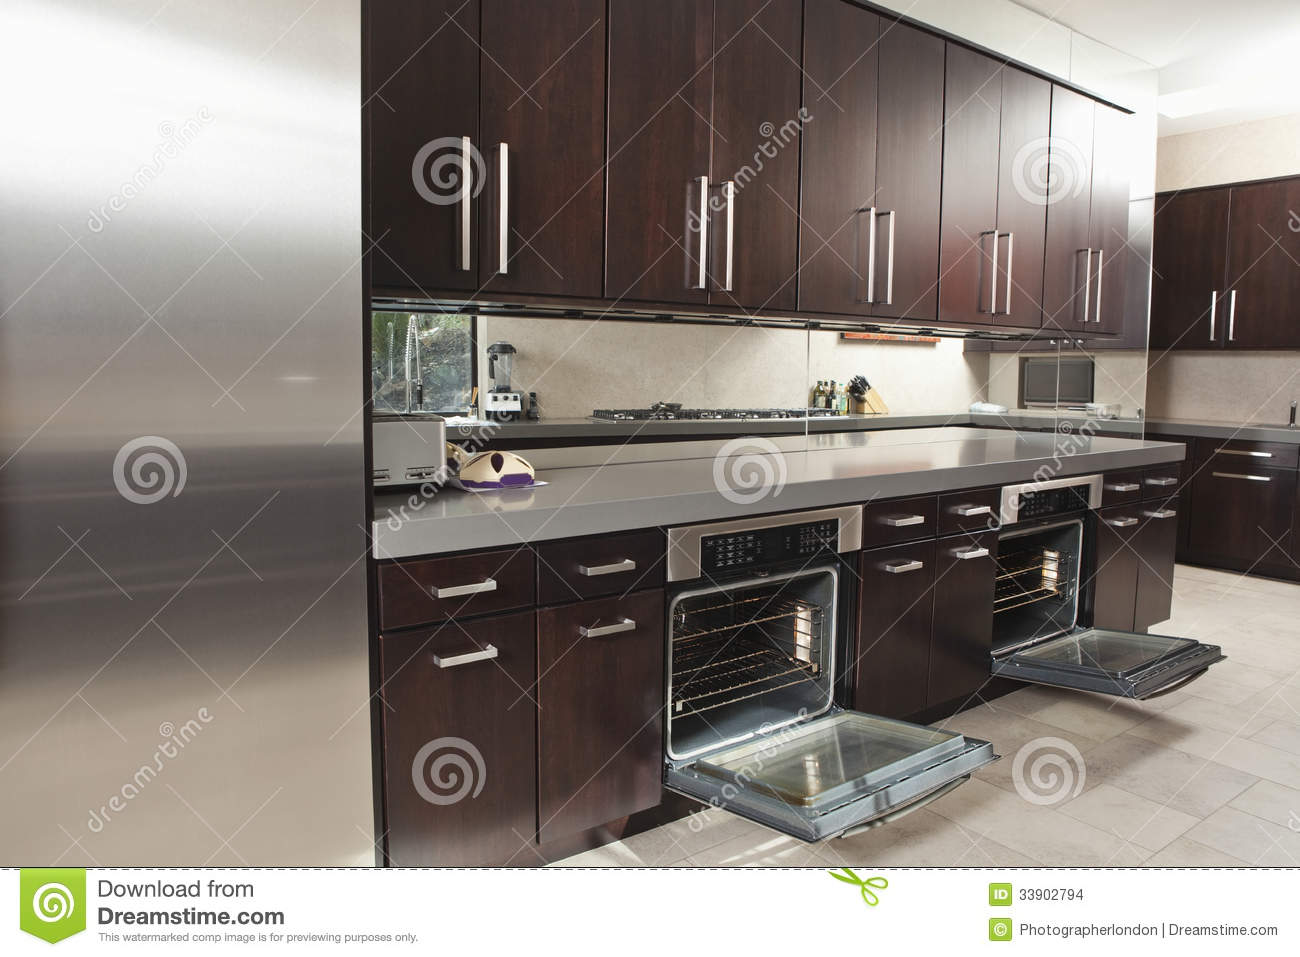 Stock Images  mercial Kitchen Open Oven Cabi s Interior Empty Image33902794 on dark oak kitchen cabinets